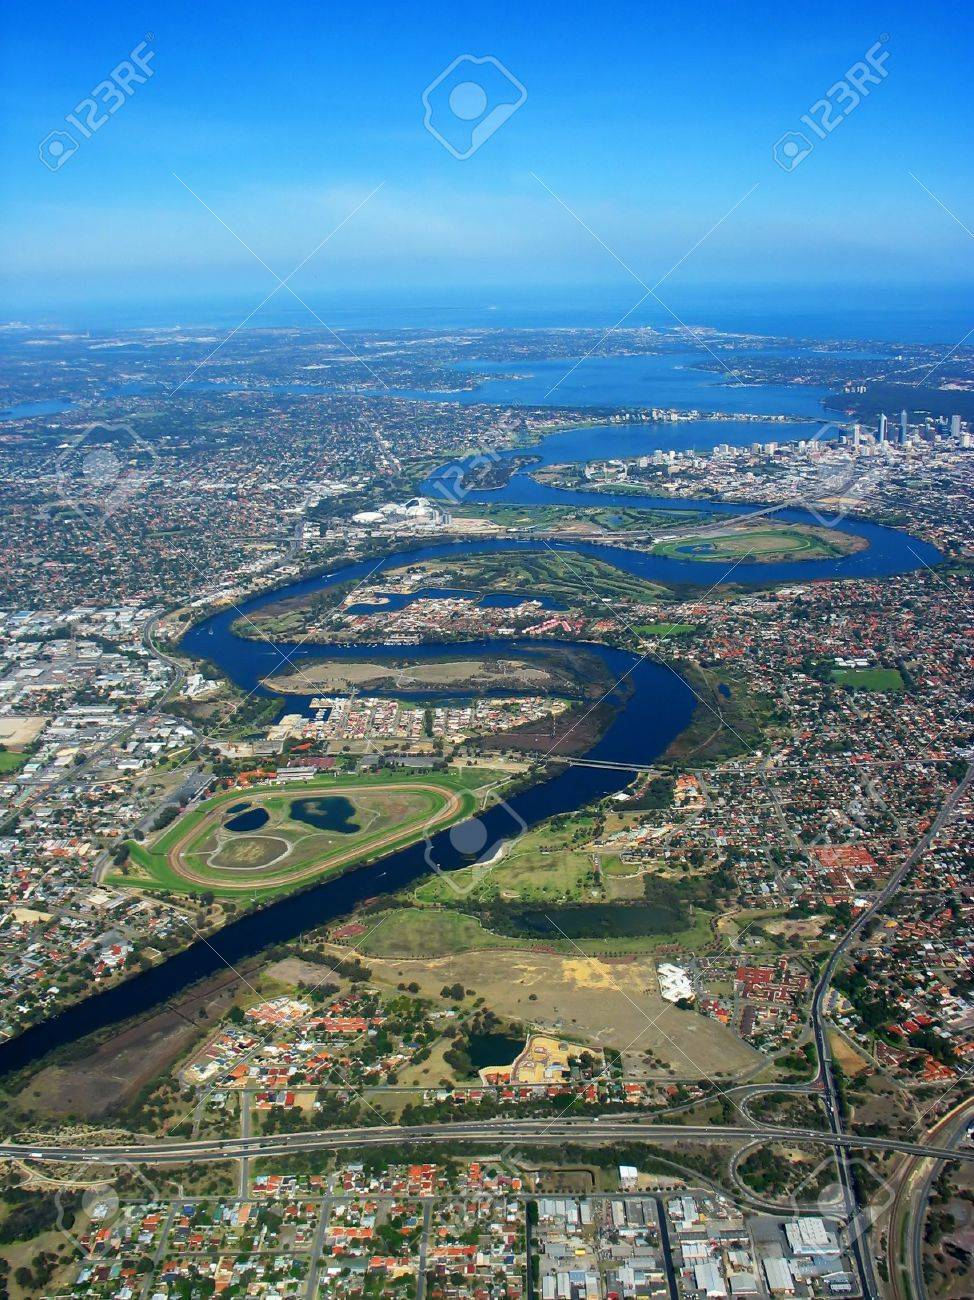 An aerial view of Swan River - 373860